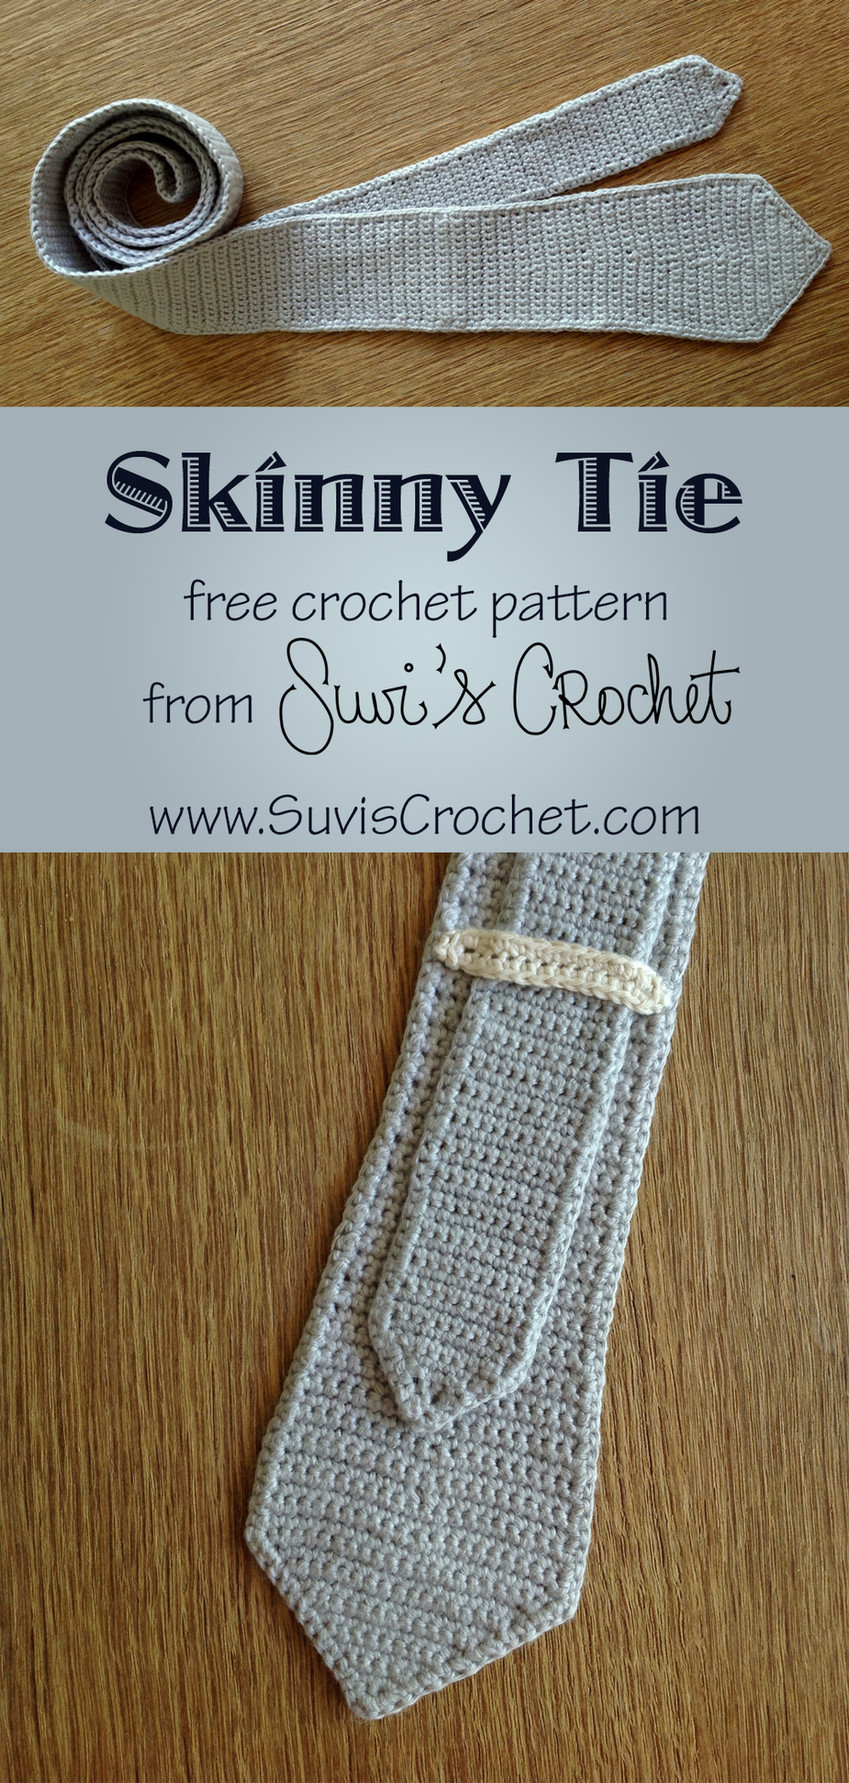 pinterest formatted image of the crocheted skinny tie